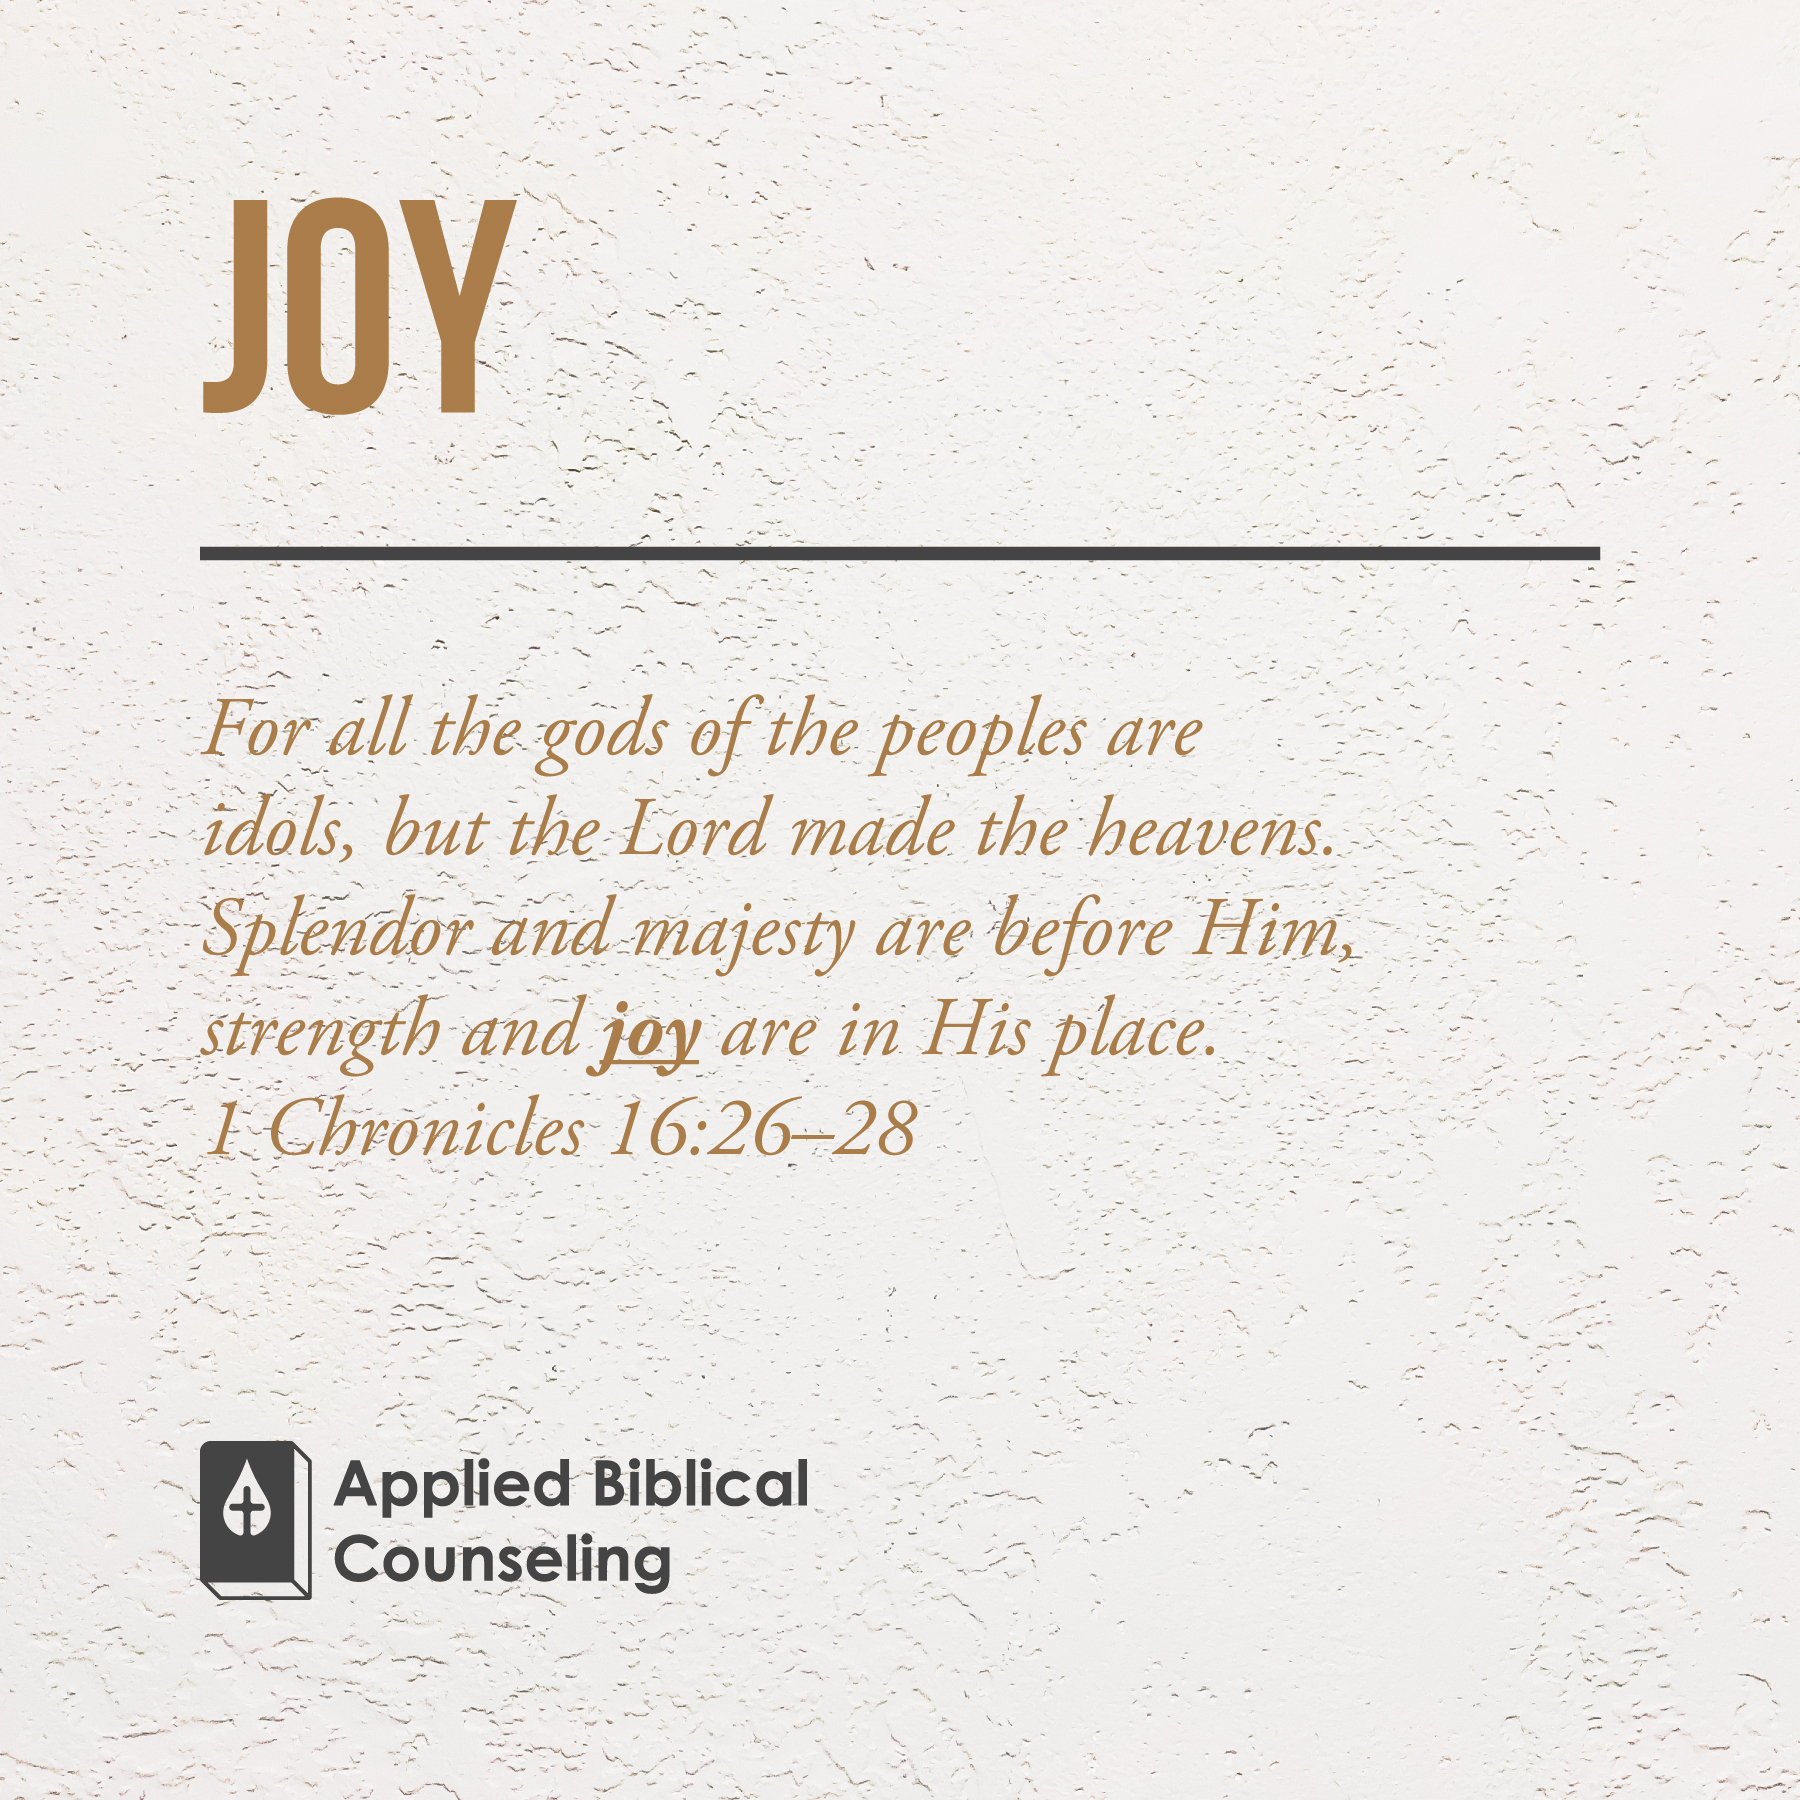 Joy Applied Biblical Counseling